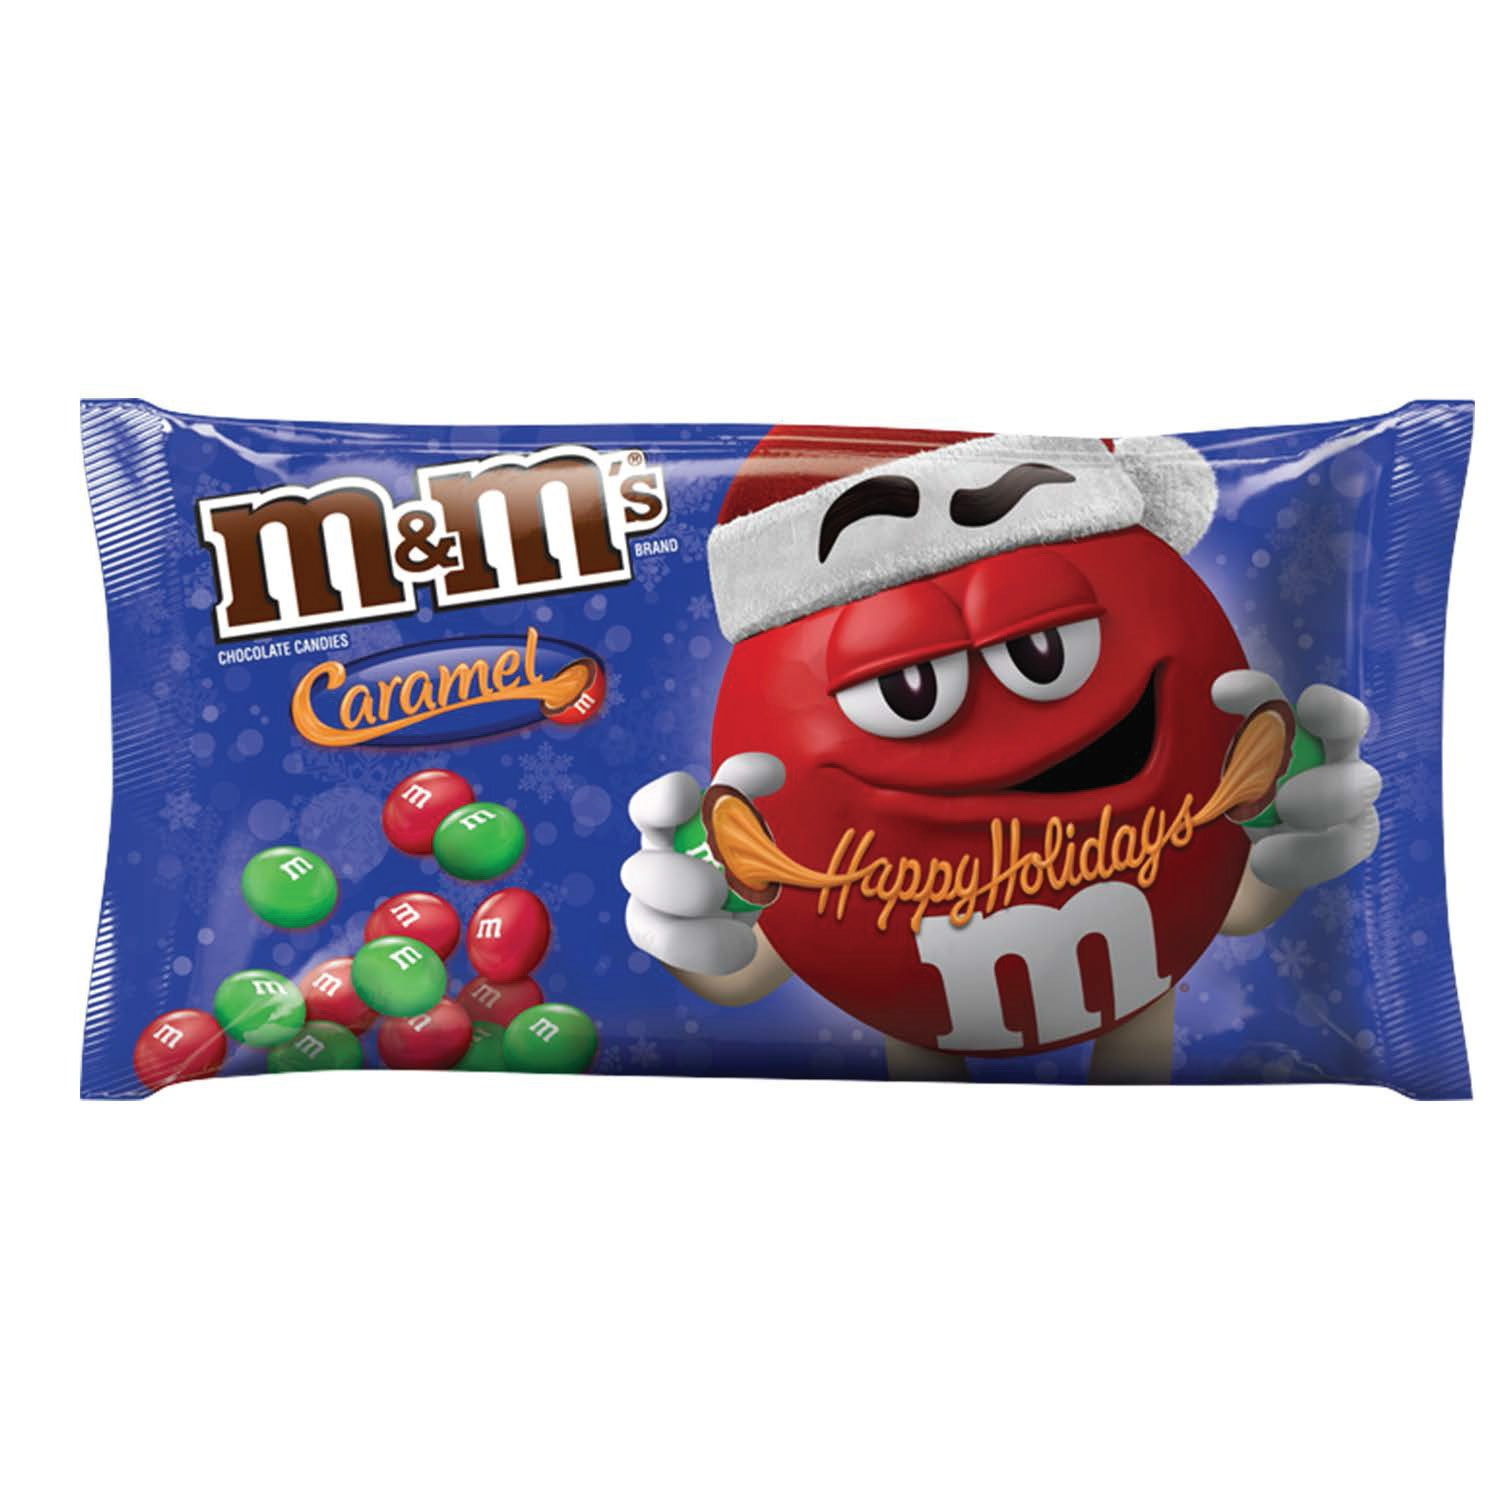 M&M's Holiday Caramel Chocolate Candy, 10.2 Ounce